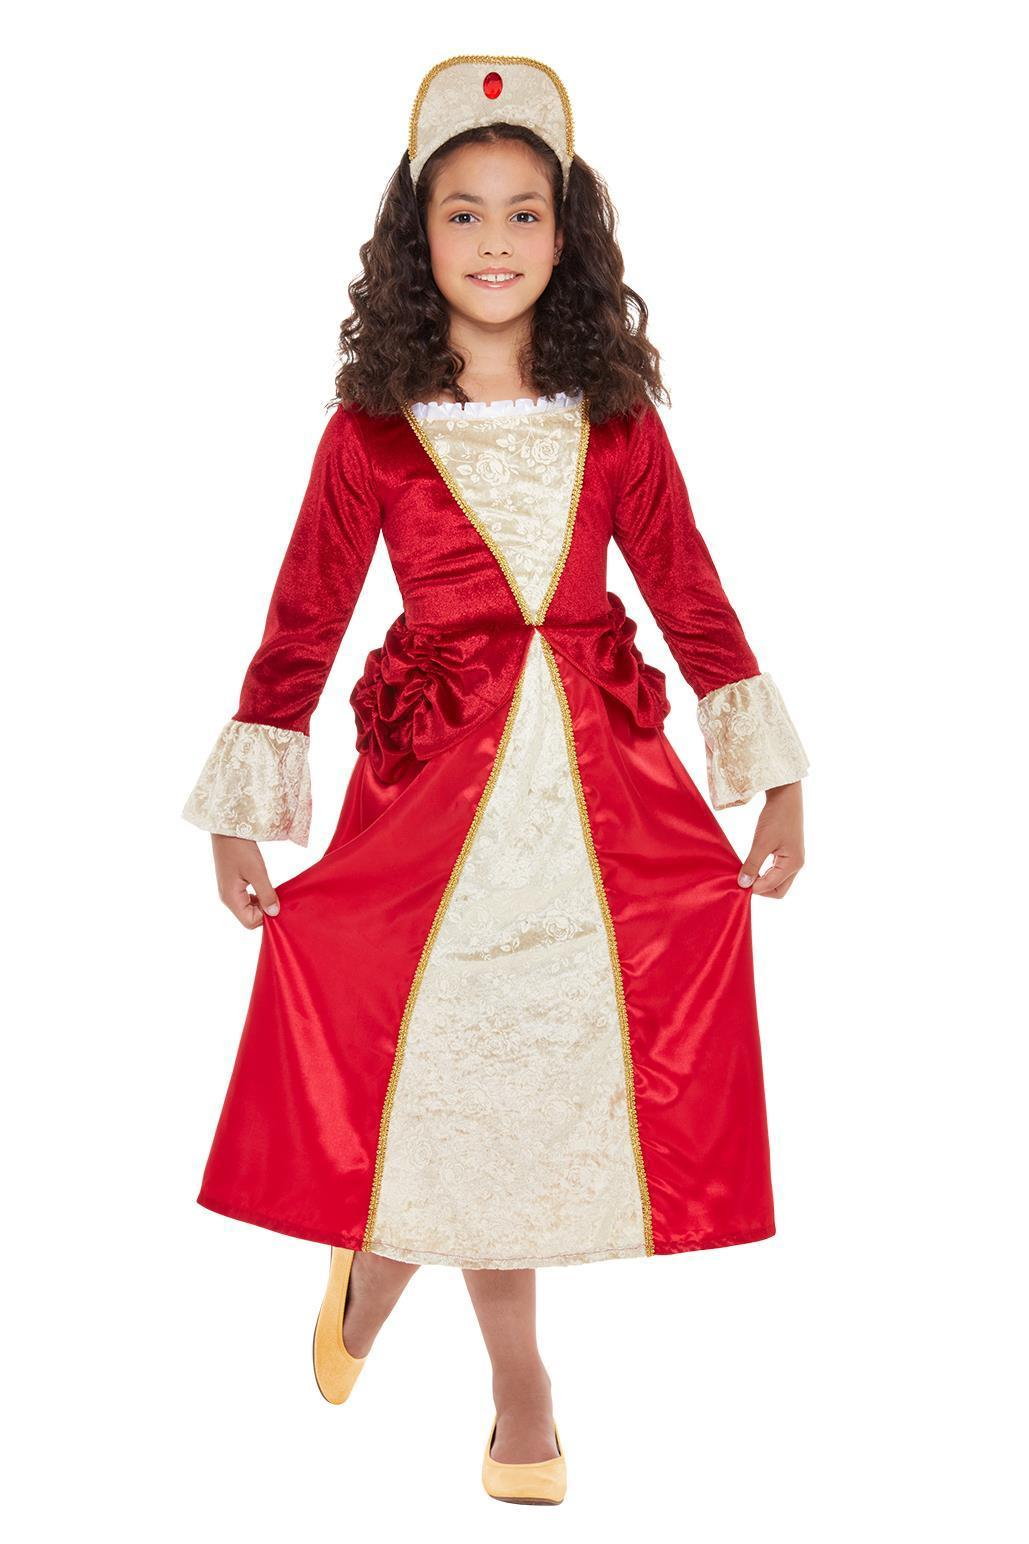 Kids Deluxe Tudor Princess Costume Red